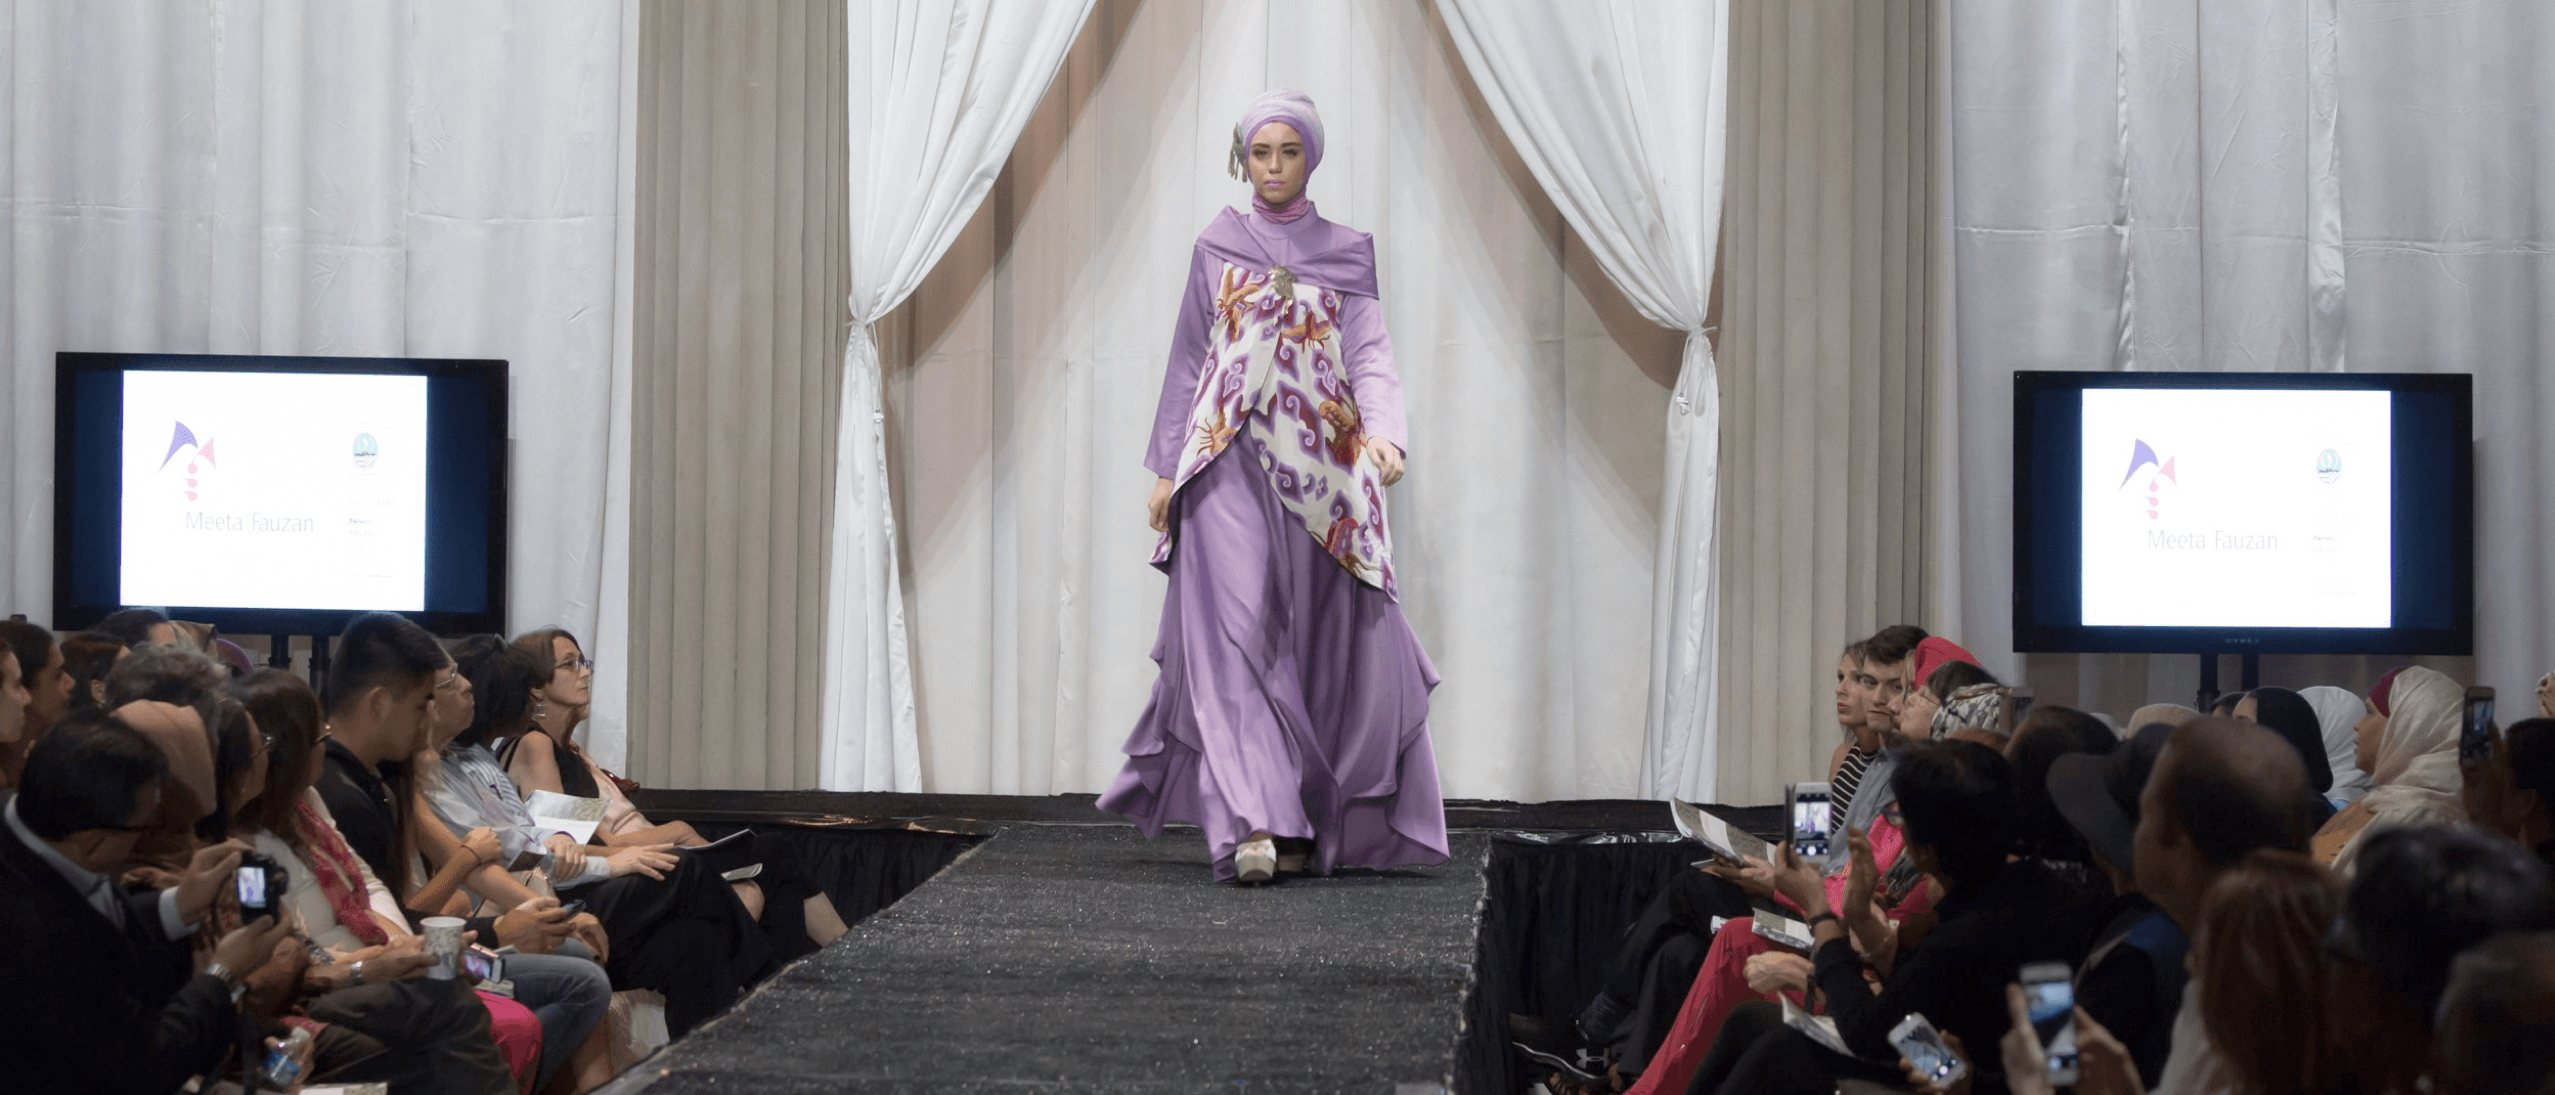 A scene from the Performing Indonesia fashion show